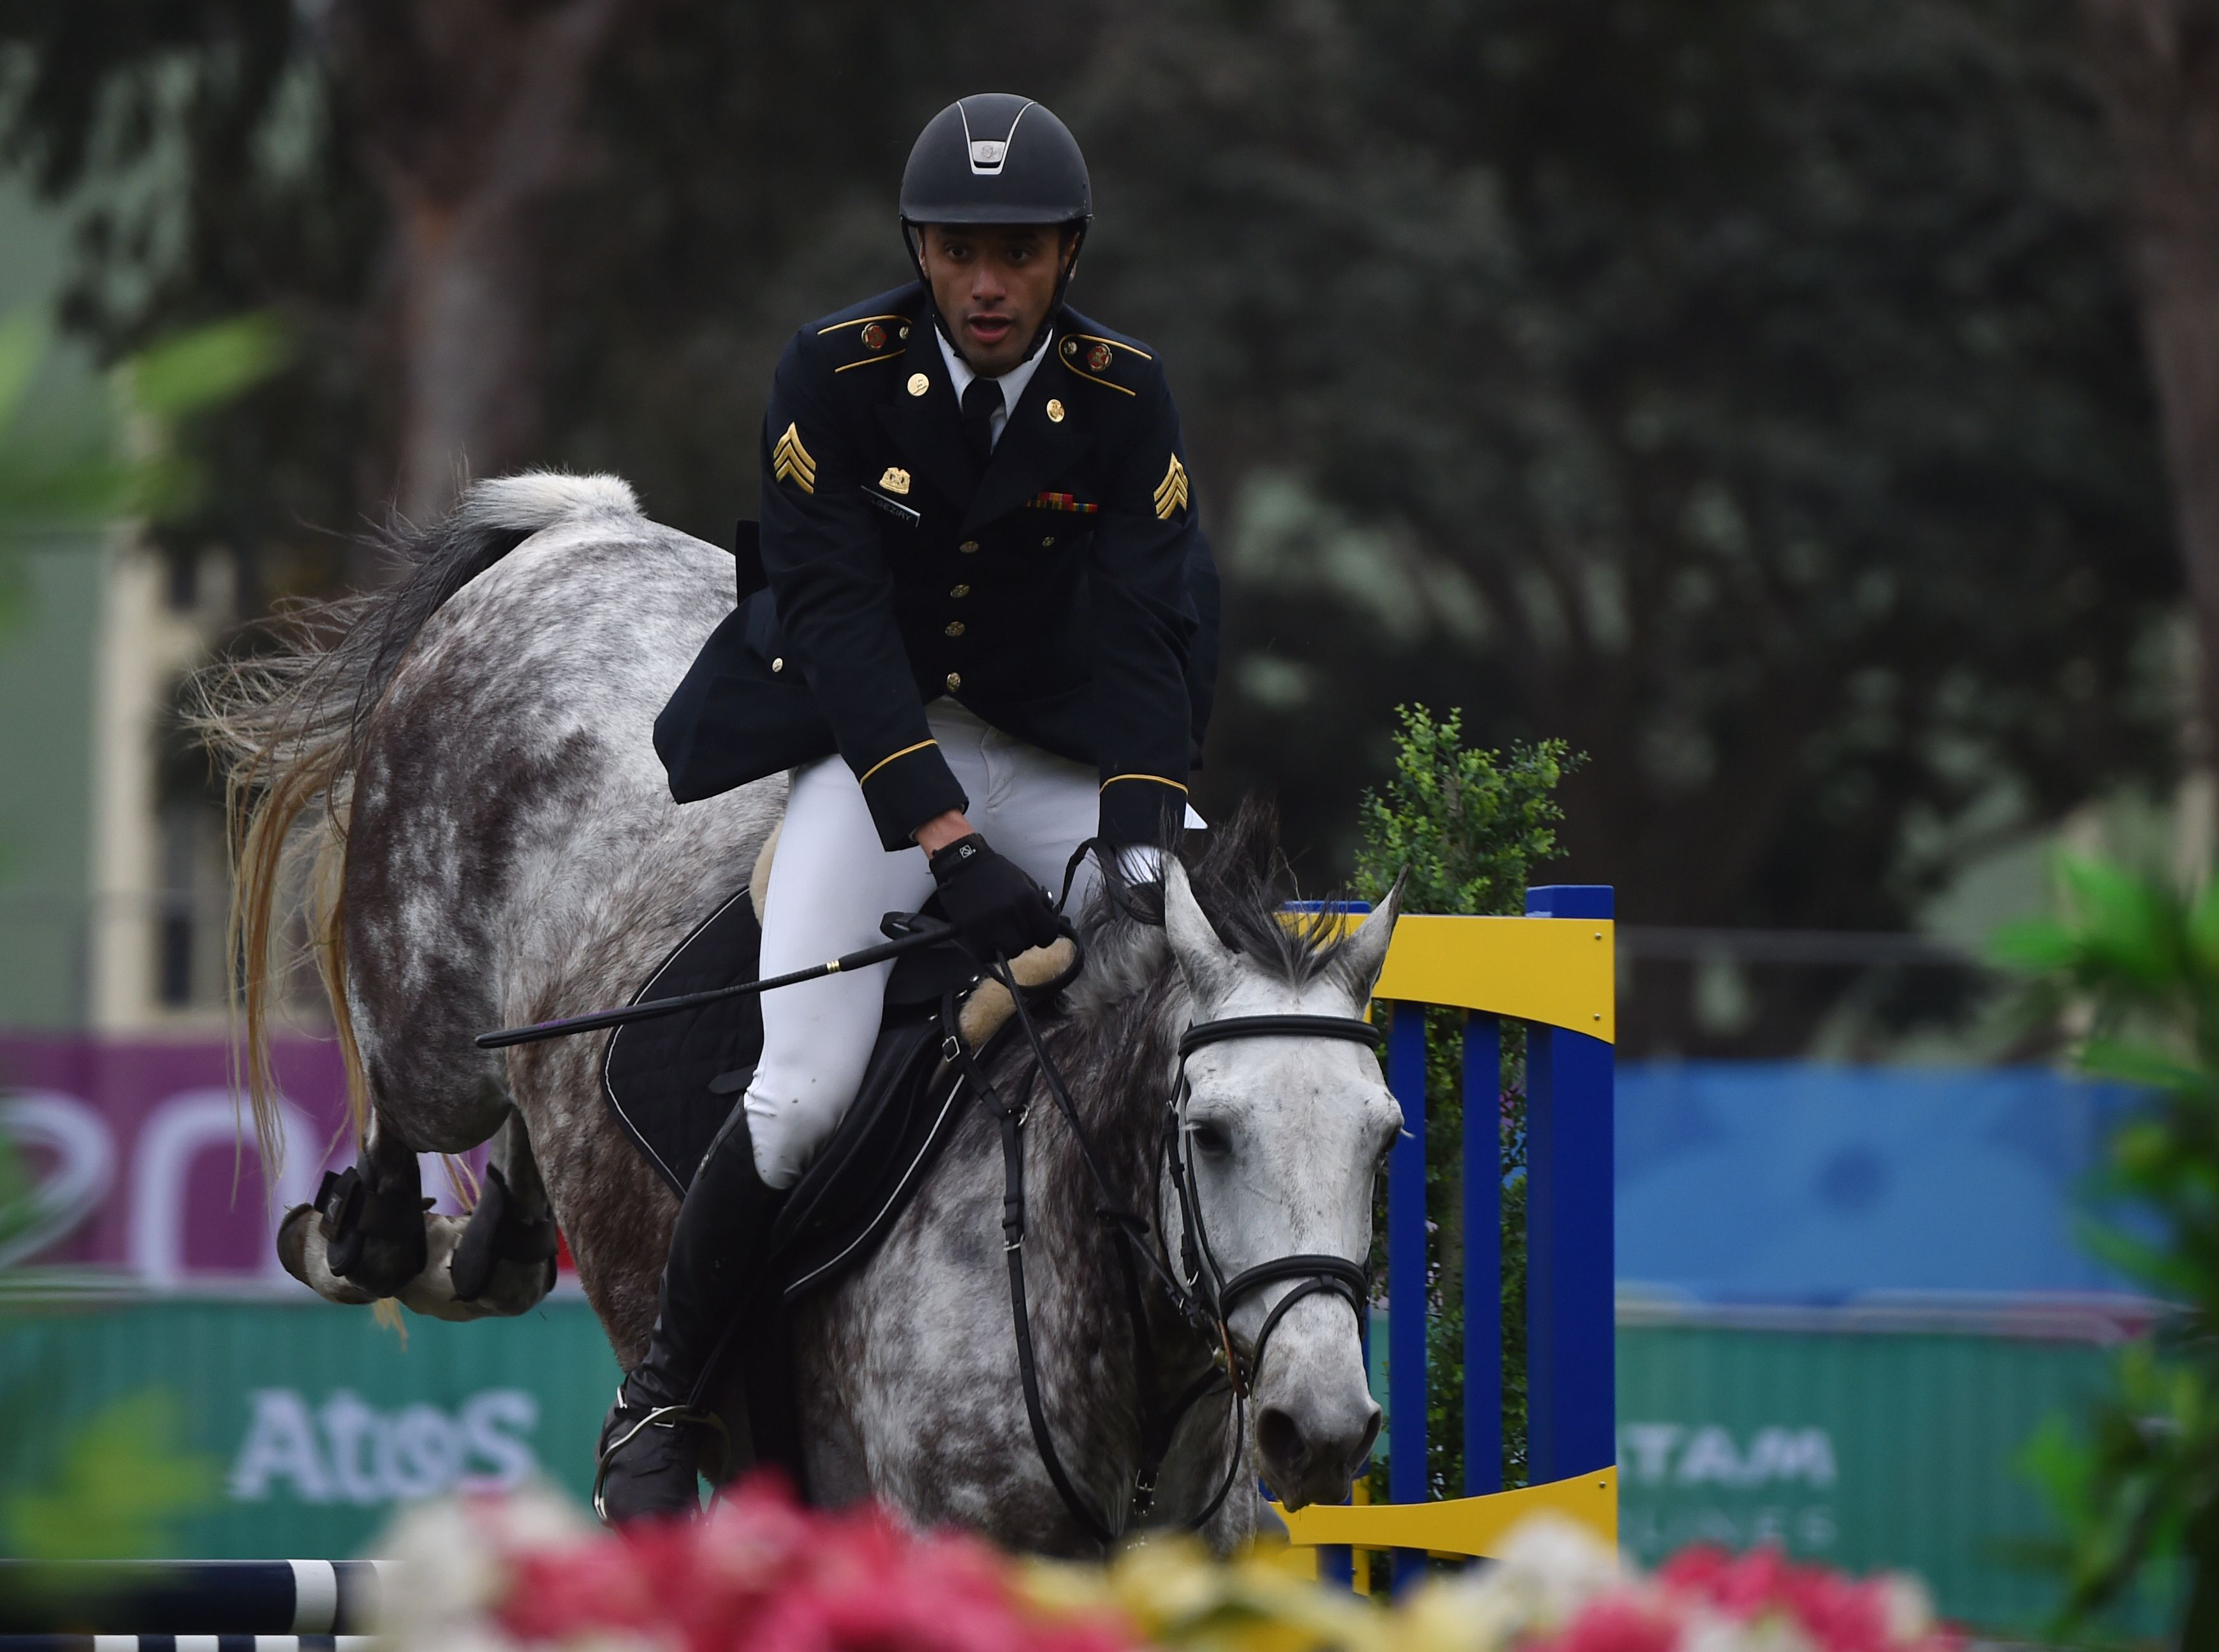 Amro ElGeziry rides a horse during the show jumping event at the Pan American Games in 2019.